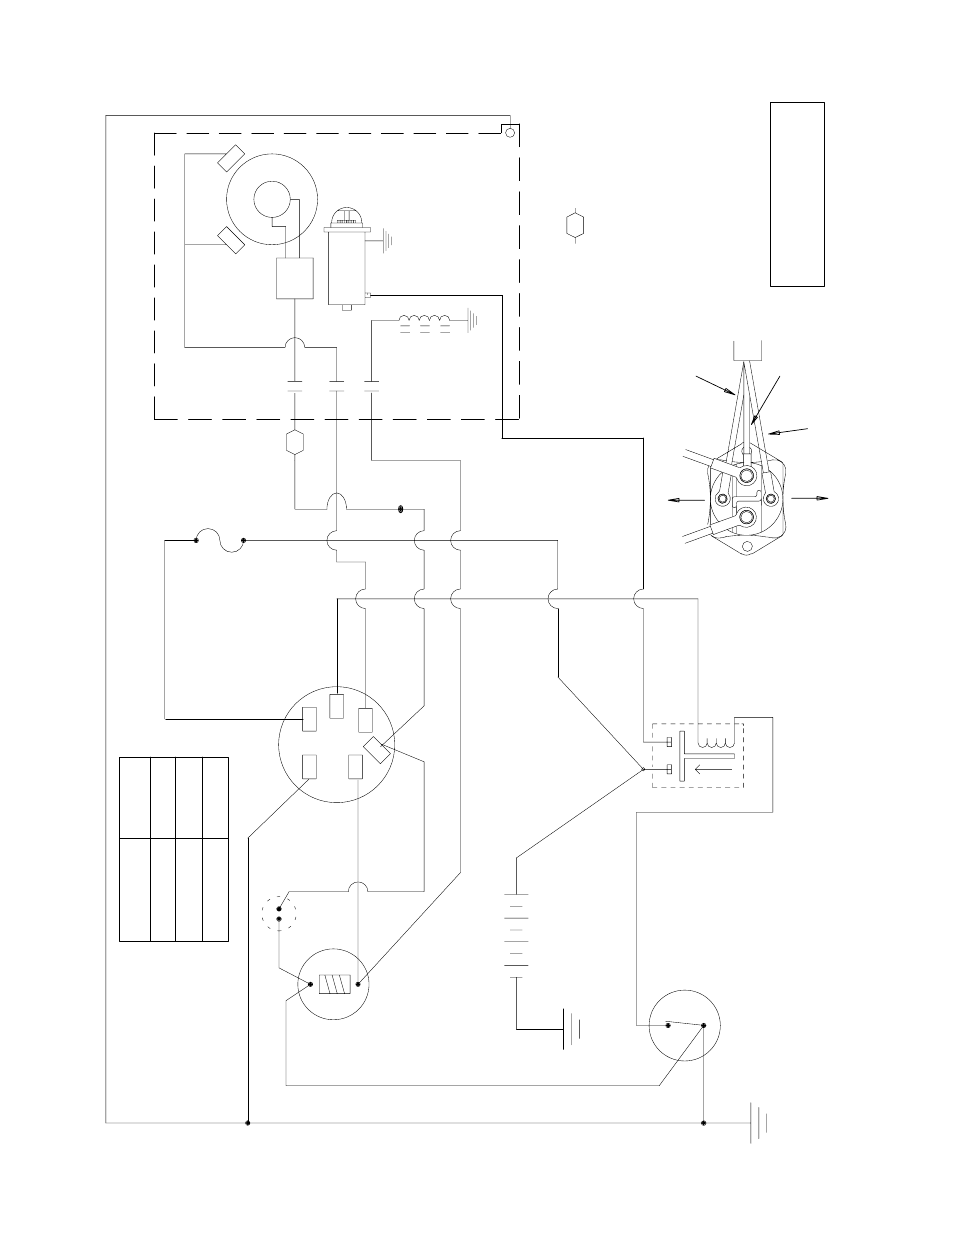 Schematics and diagrams, Electrical schematics and diagrams, Electrical  schematic | Toro Sand Pro 5020 User Manual | Page 128 / 170